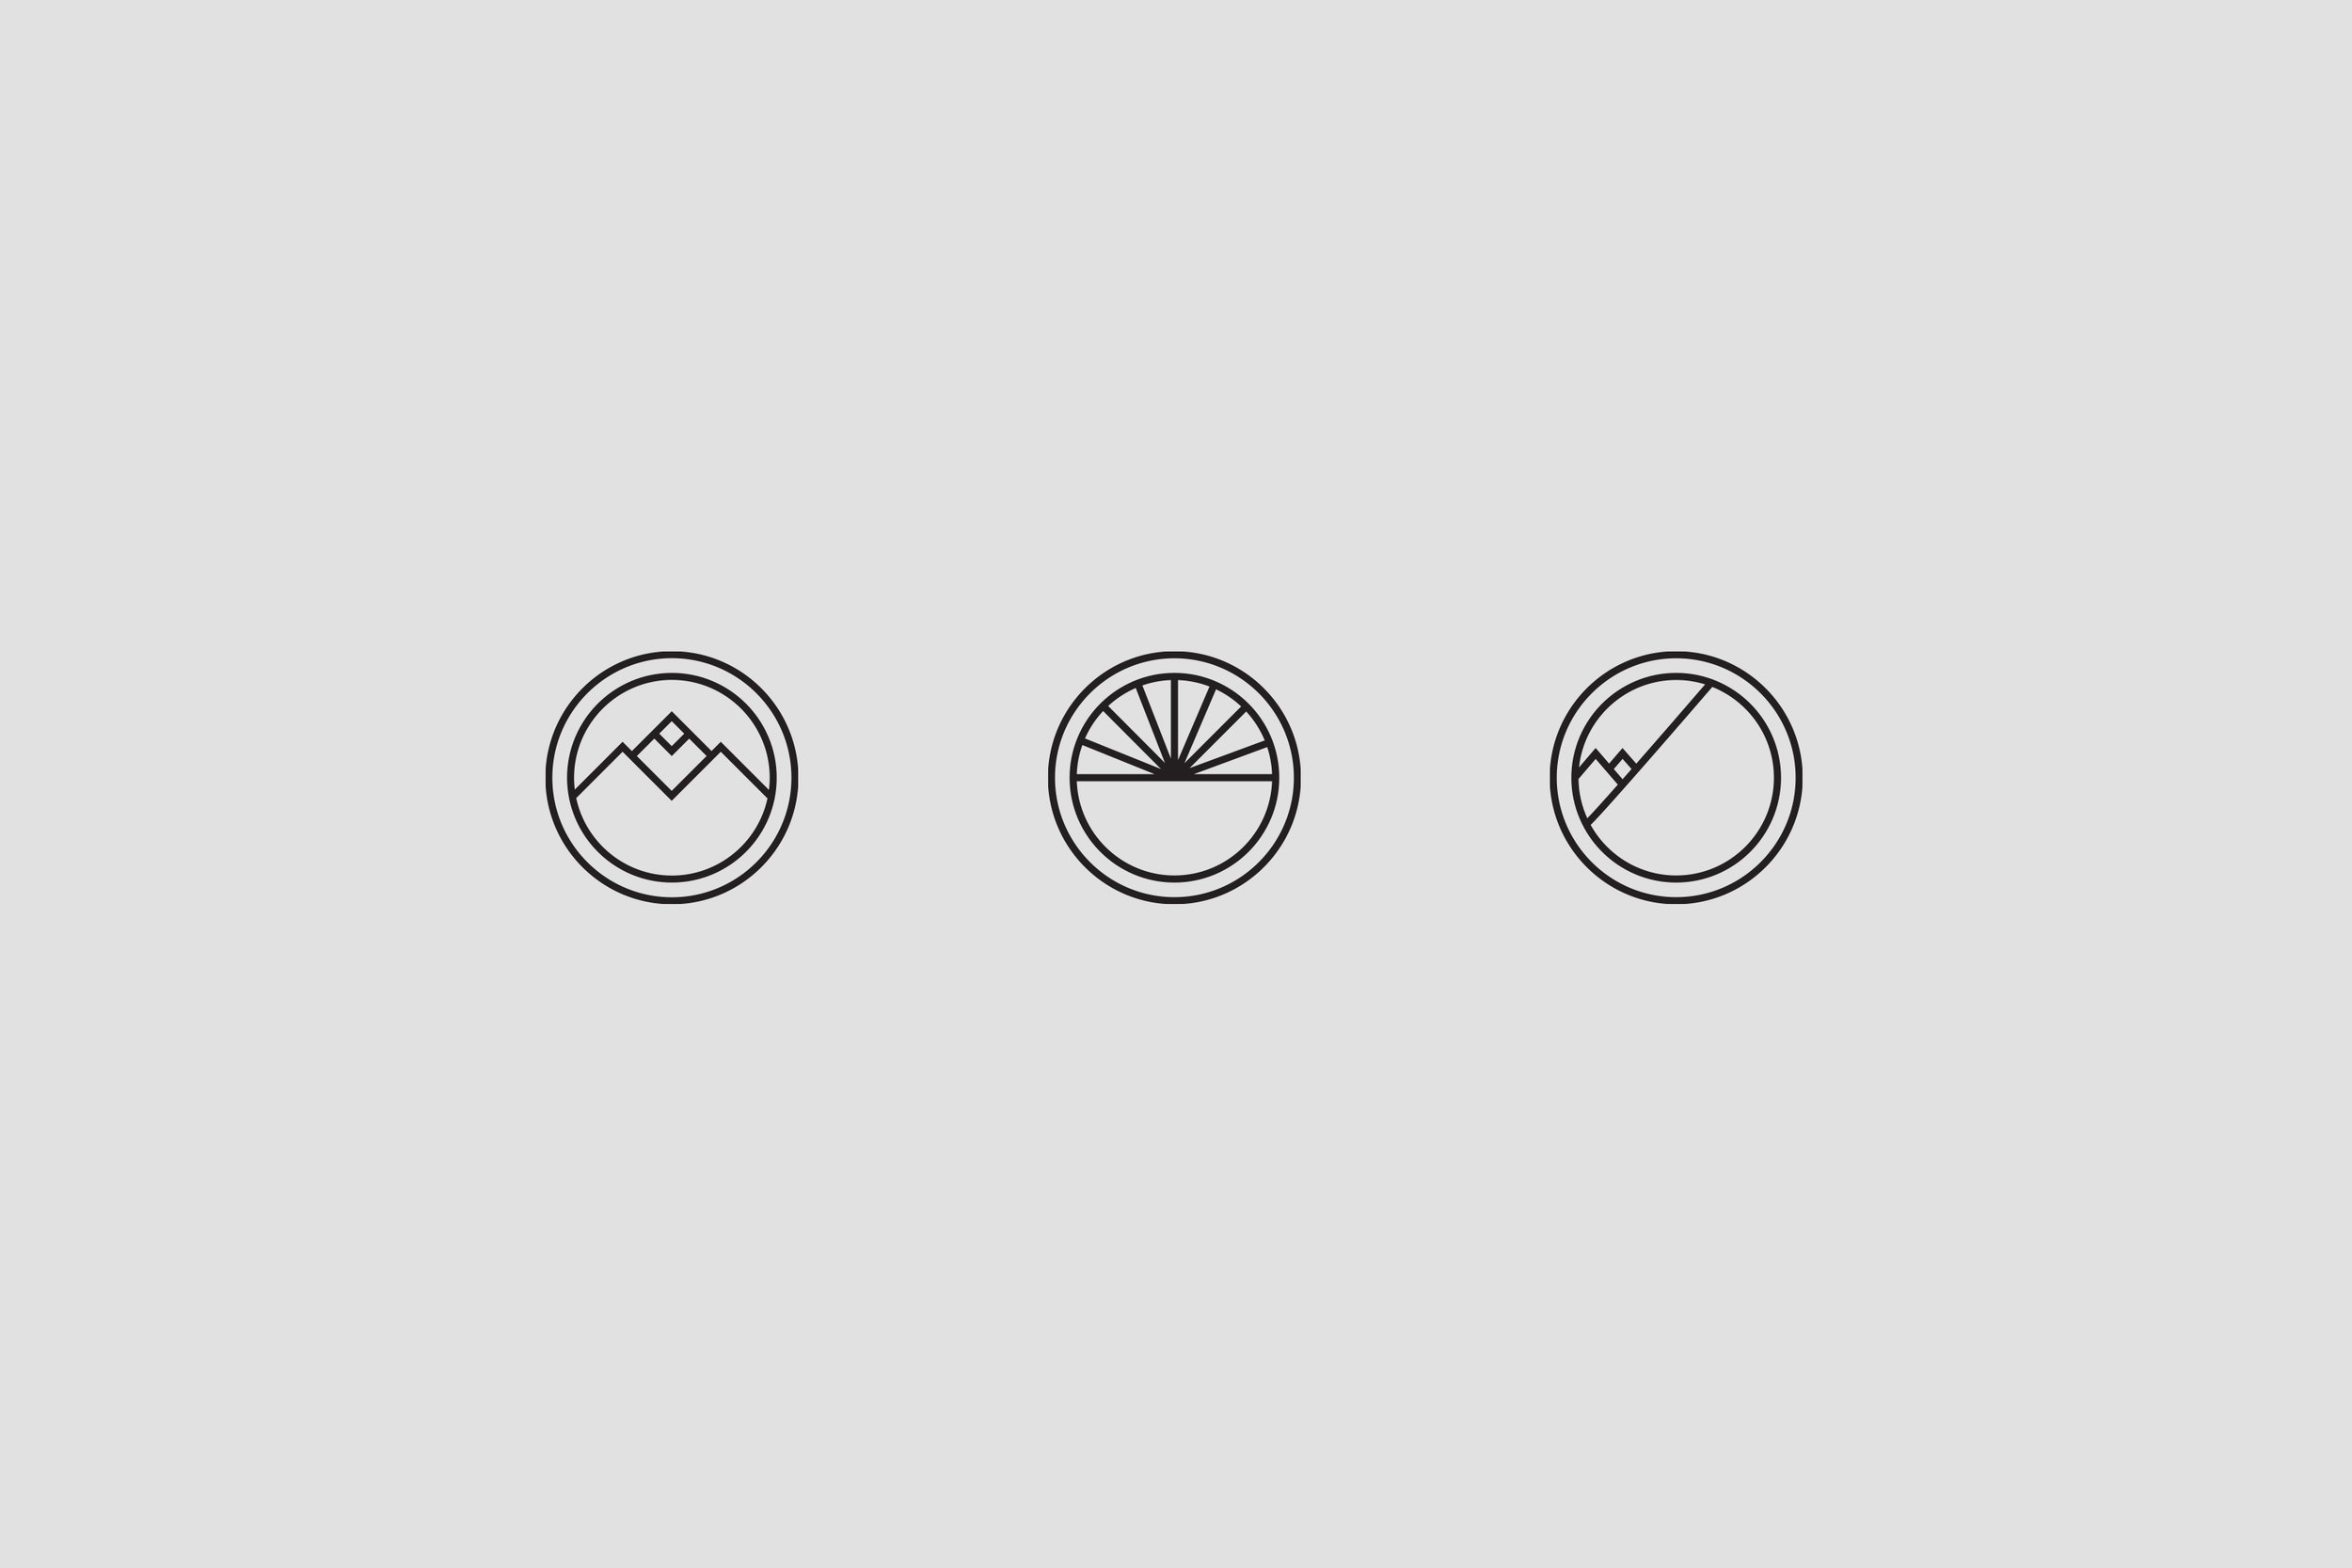 Thereabouts_Folio_icons.jpg